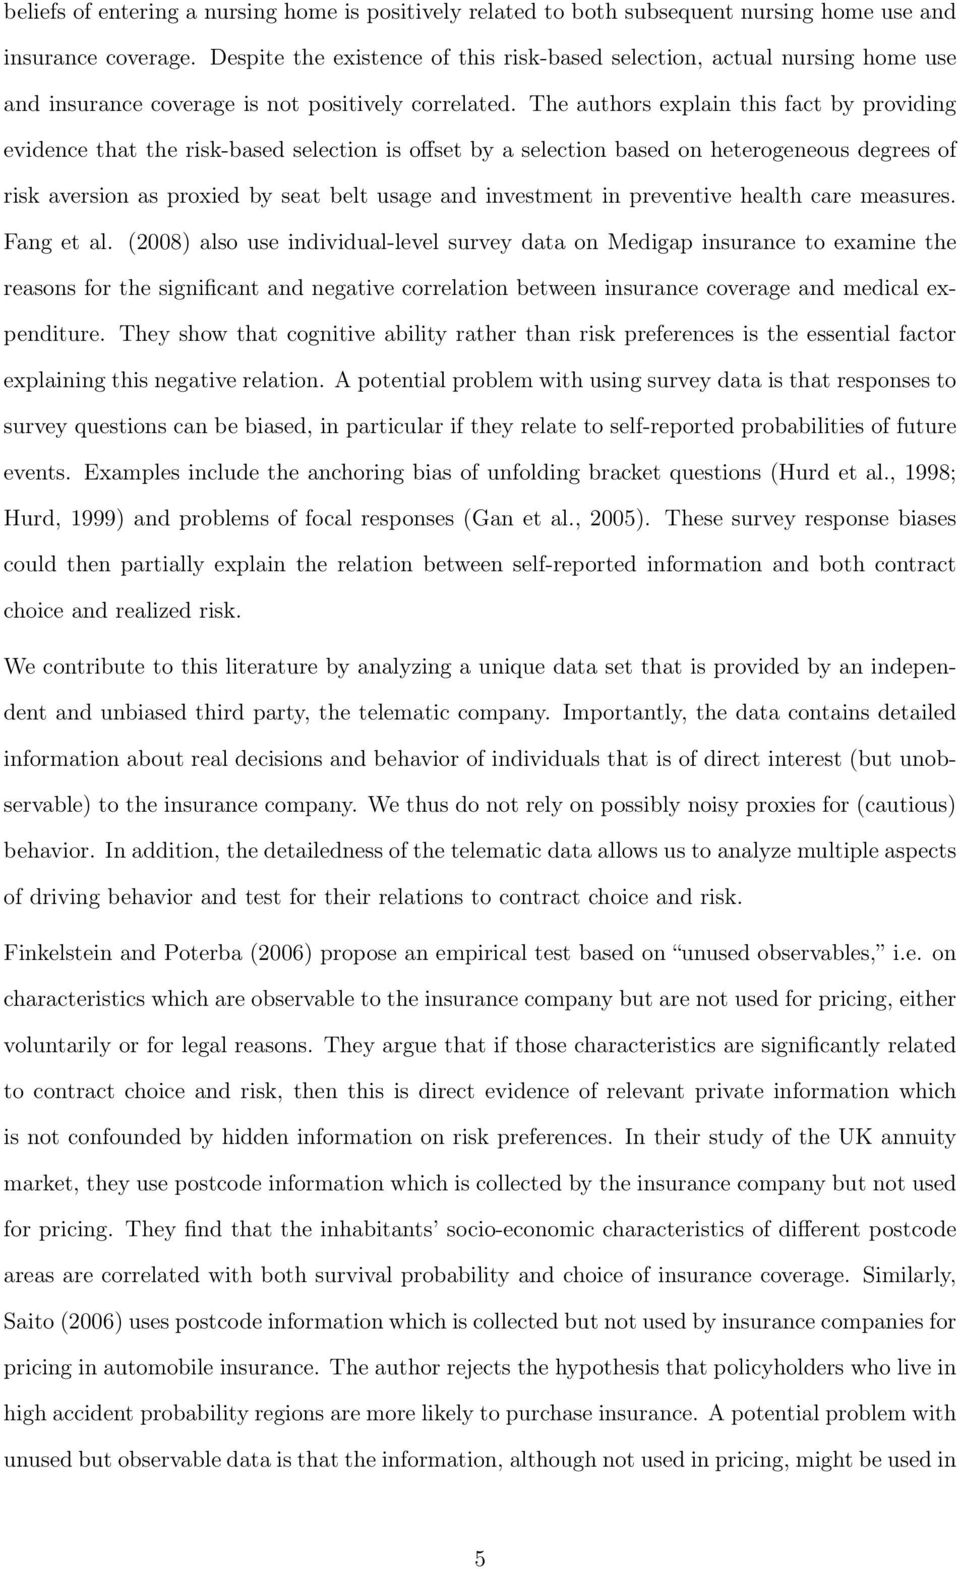 The authors explain this fact by providing evidence that the risk-based selection is offset by a selection based on heterogeneous degrees of risk aversion as proxied by seat belt usage and investment